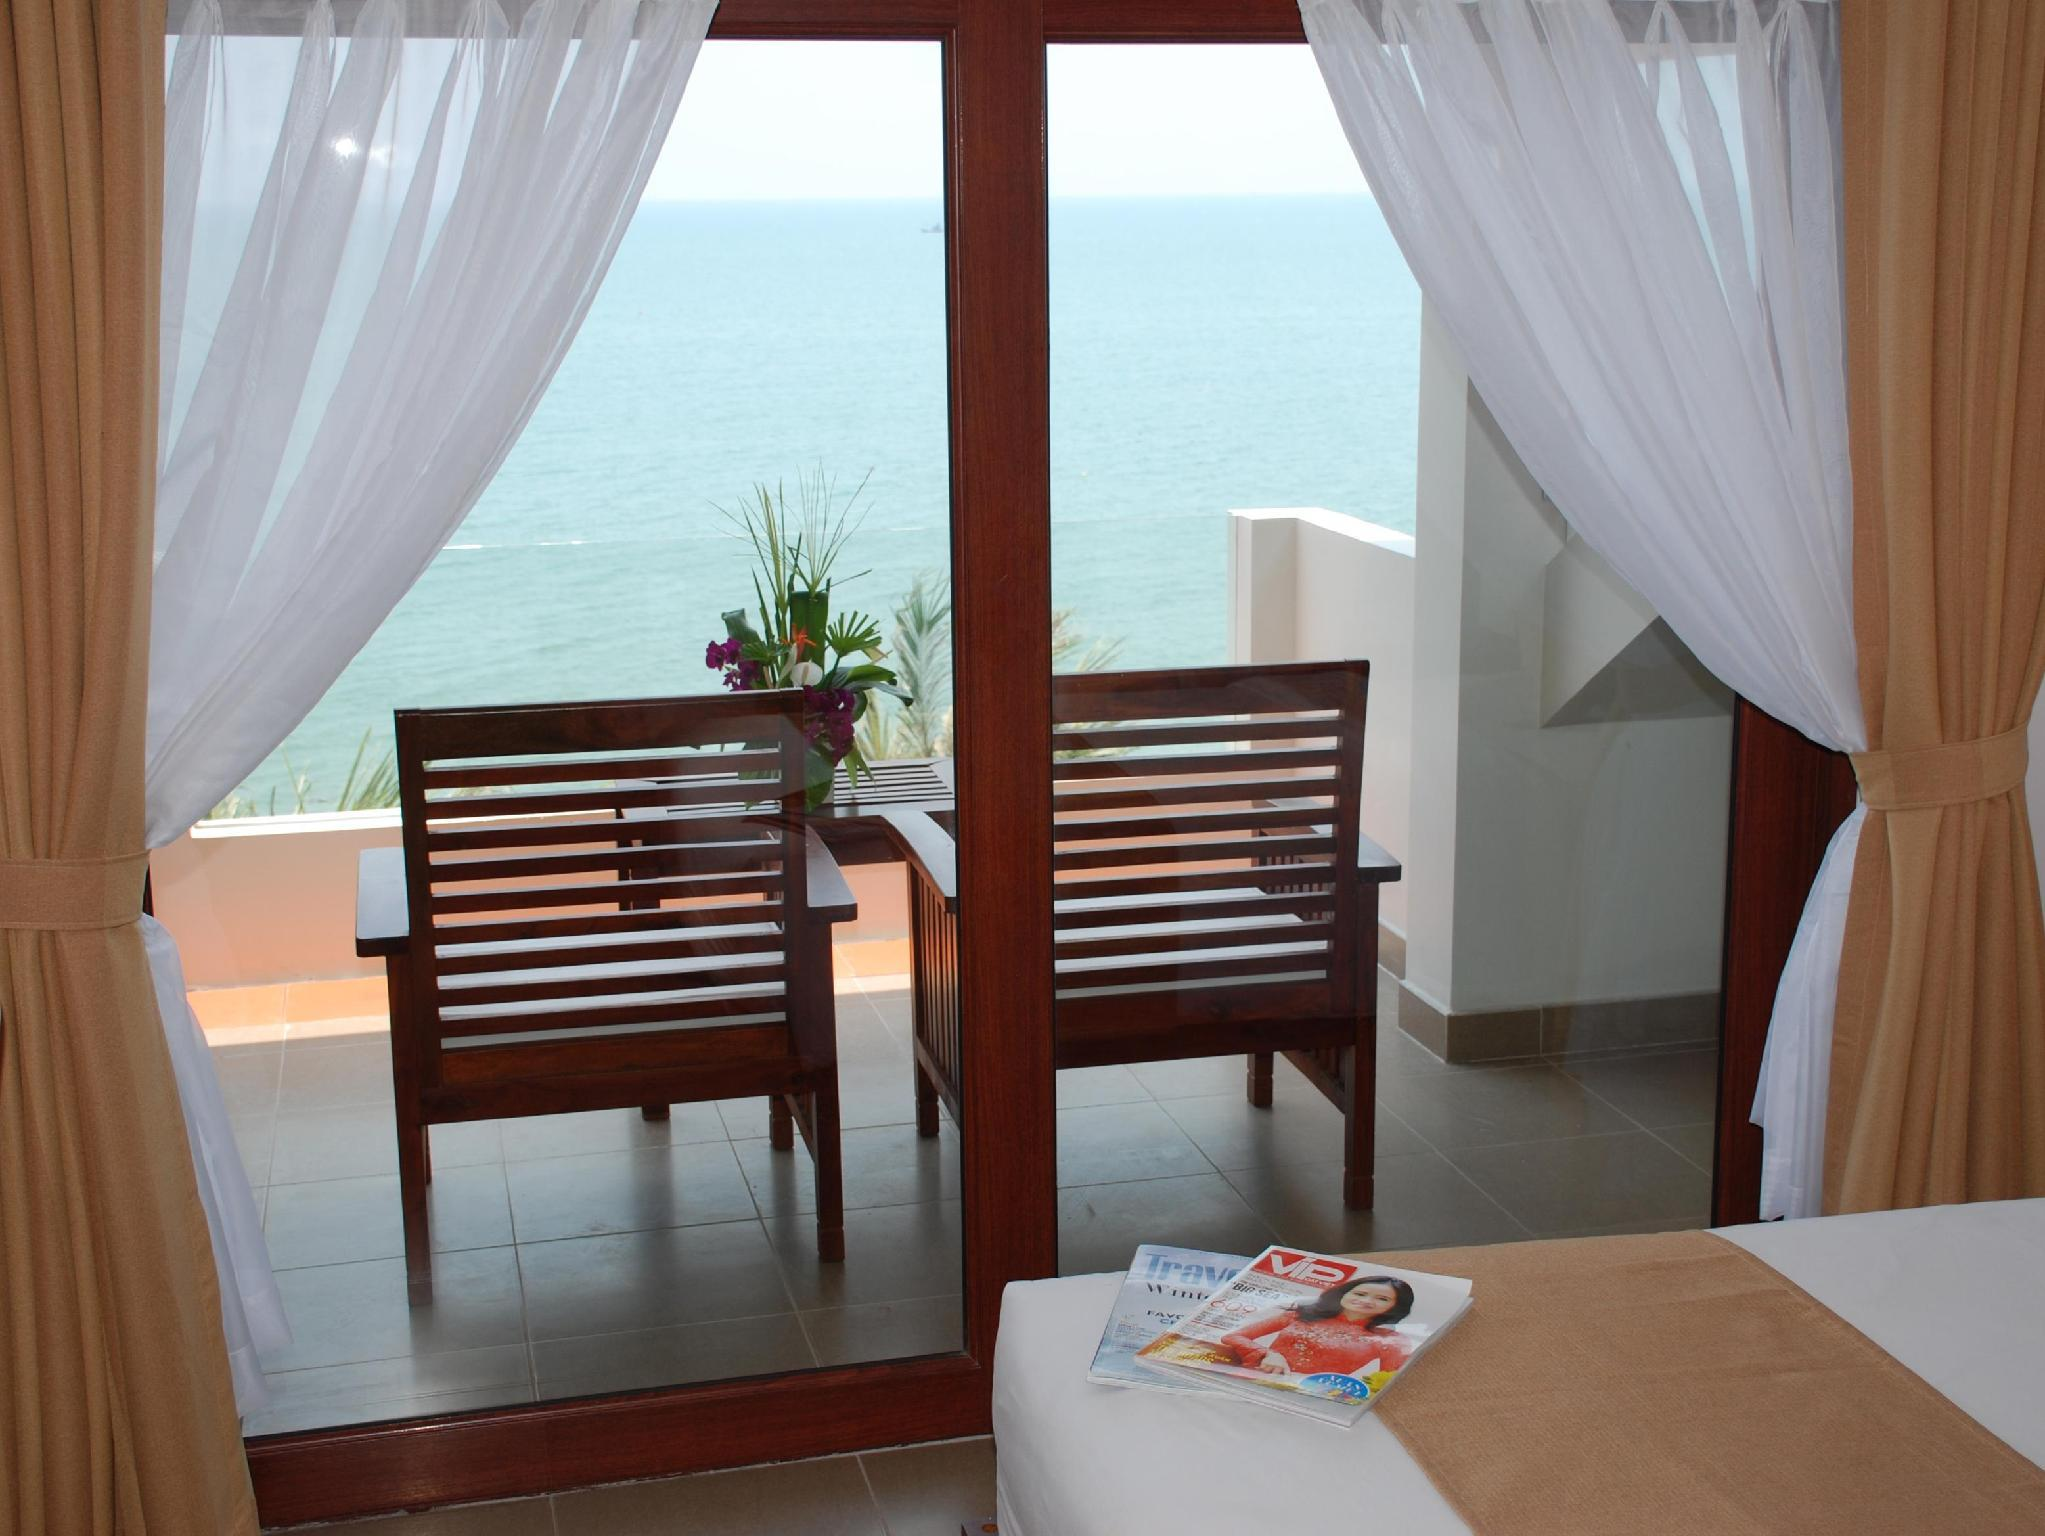 Deluxe hướng biển (Deluxe Sea View)